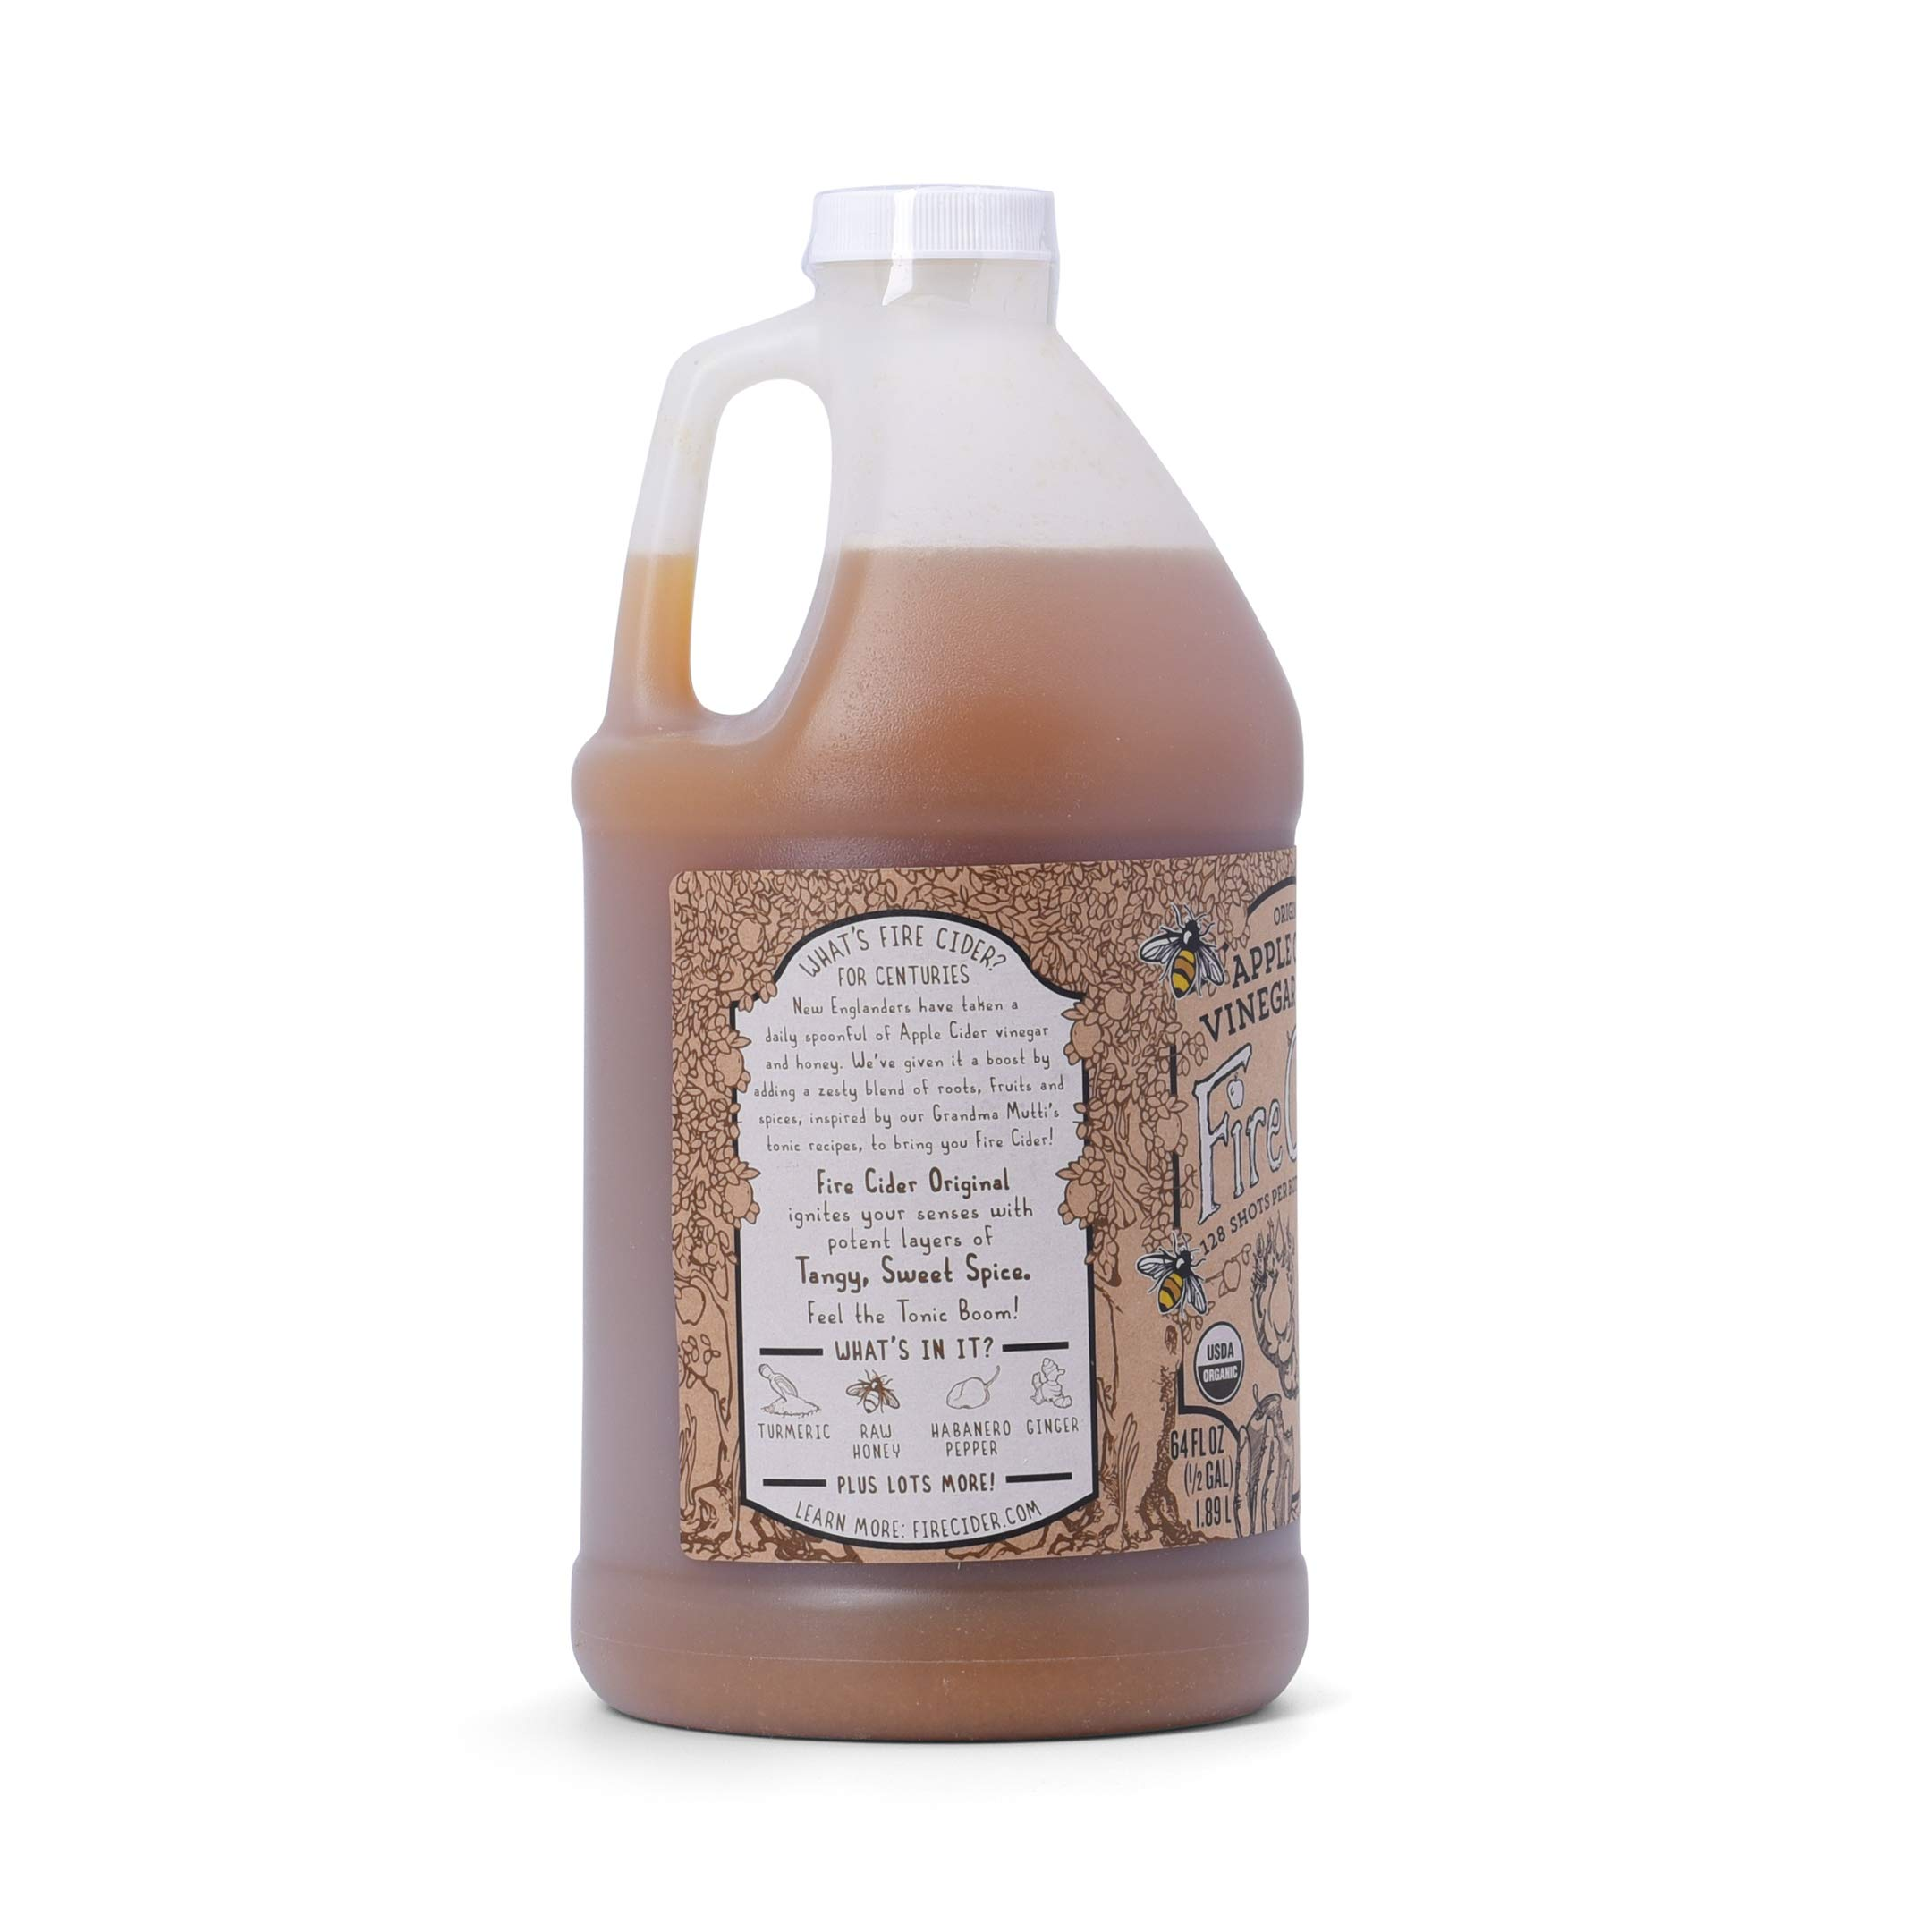 Fire Cider, Apple Cider Vinegar Tonic with Honey, Original Flavor, Pure & Raw, All Certified Organic Ingredients, Not Heat Processed, Not Pasteurized, Paleo, Keto, 128 Shots, 64 oz. by FIRE CIDER (Image #2)